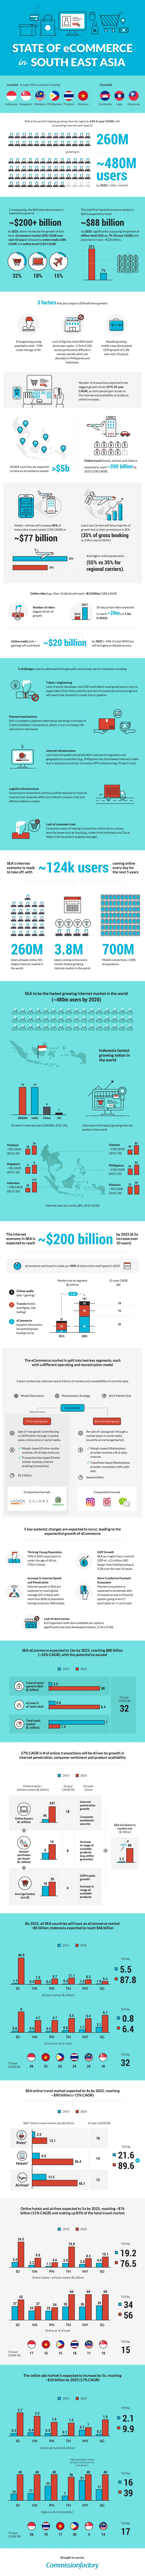 State of eCommerce in South East Asia | Infographics | Pinterest